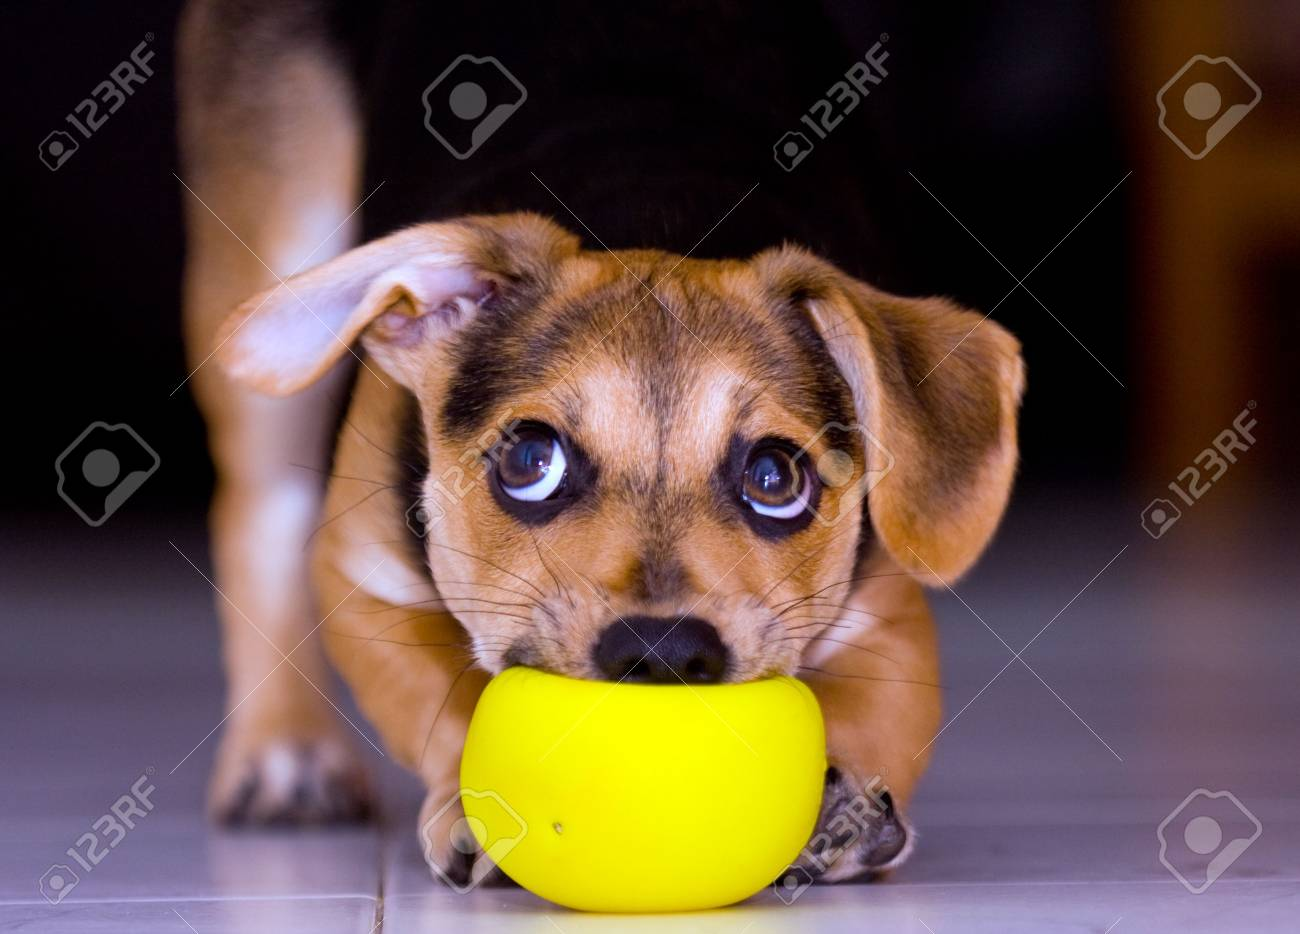 playing puppy - 3260592